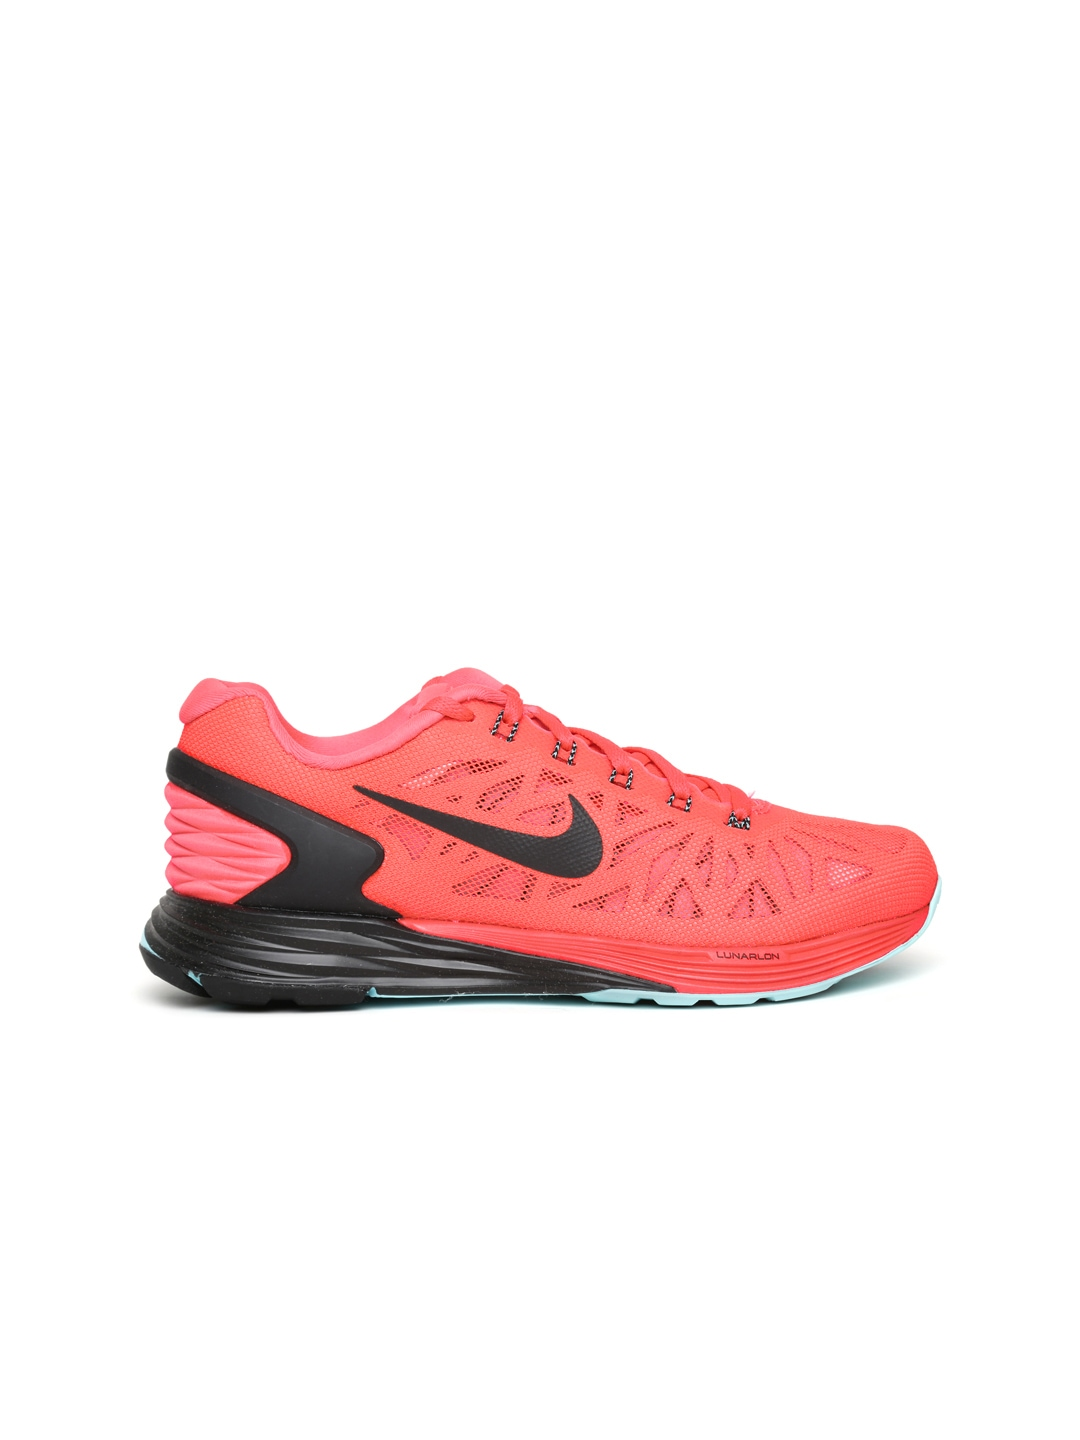 Unique Home Footwear Women Footwear Sports Shoes Nike Sports Shoes